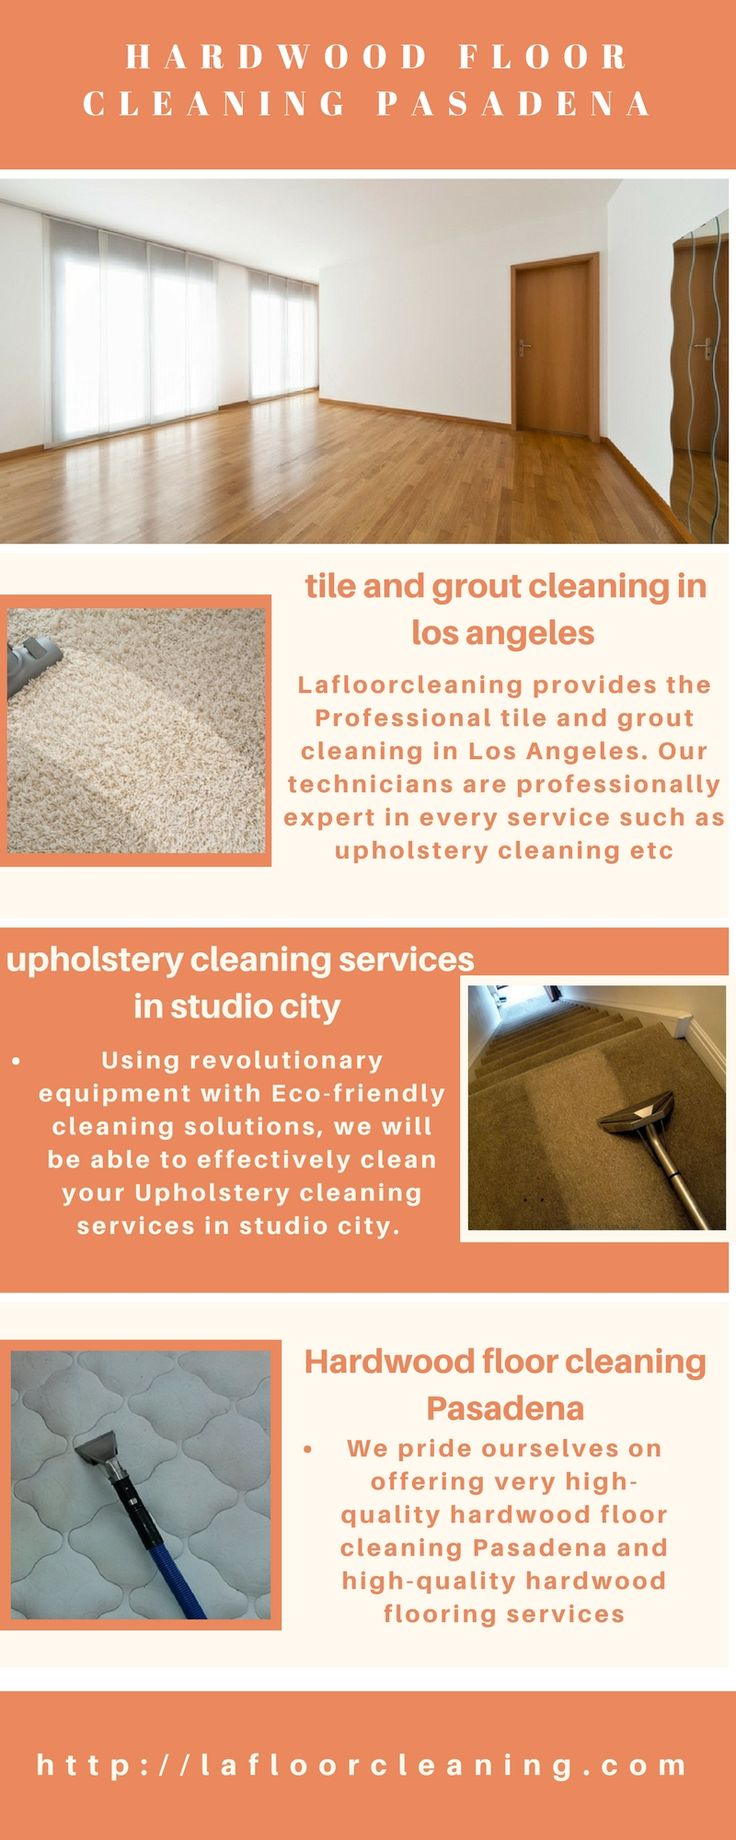 Lafloorcleaning Provides The Professional Tile And Grout Cleaning In Los  Angeles. Our Technicians Are Professionally Expert In Every Service Such As  Tile ...